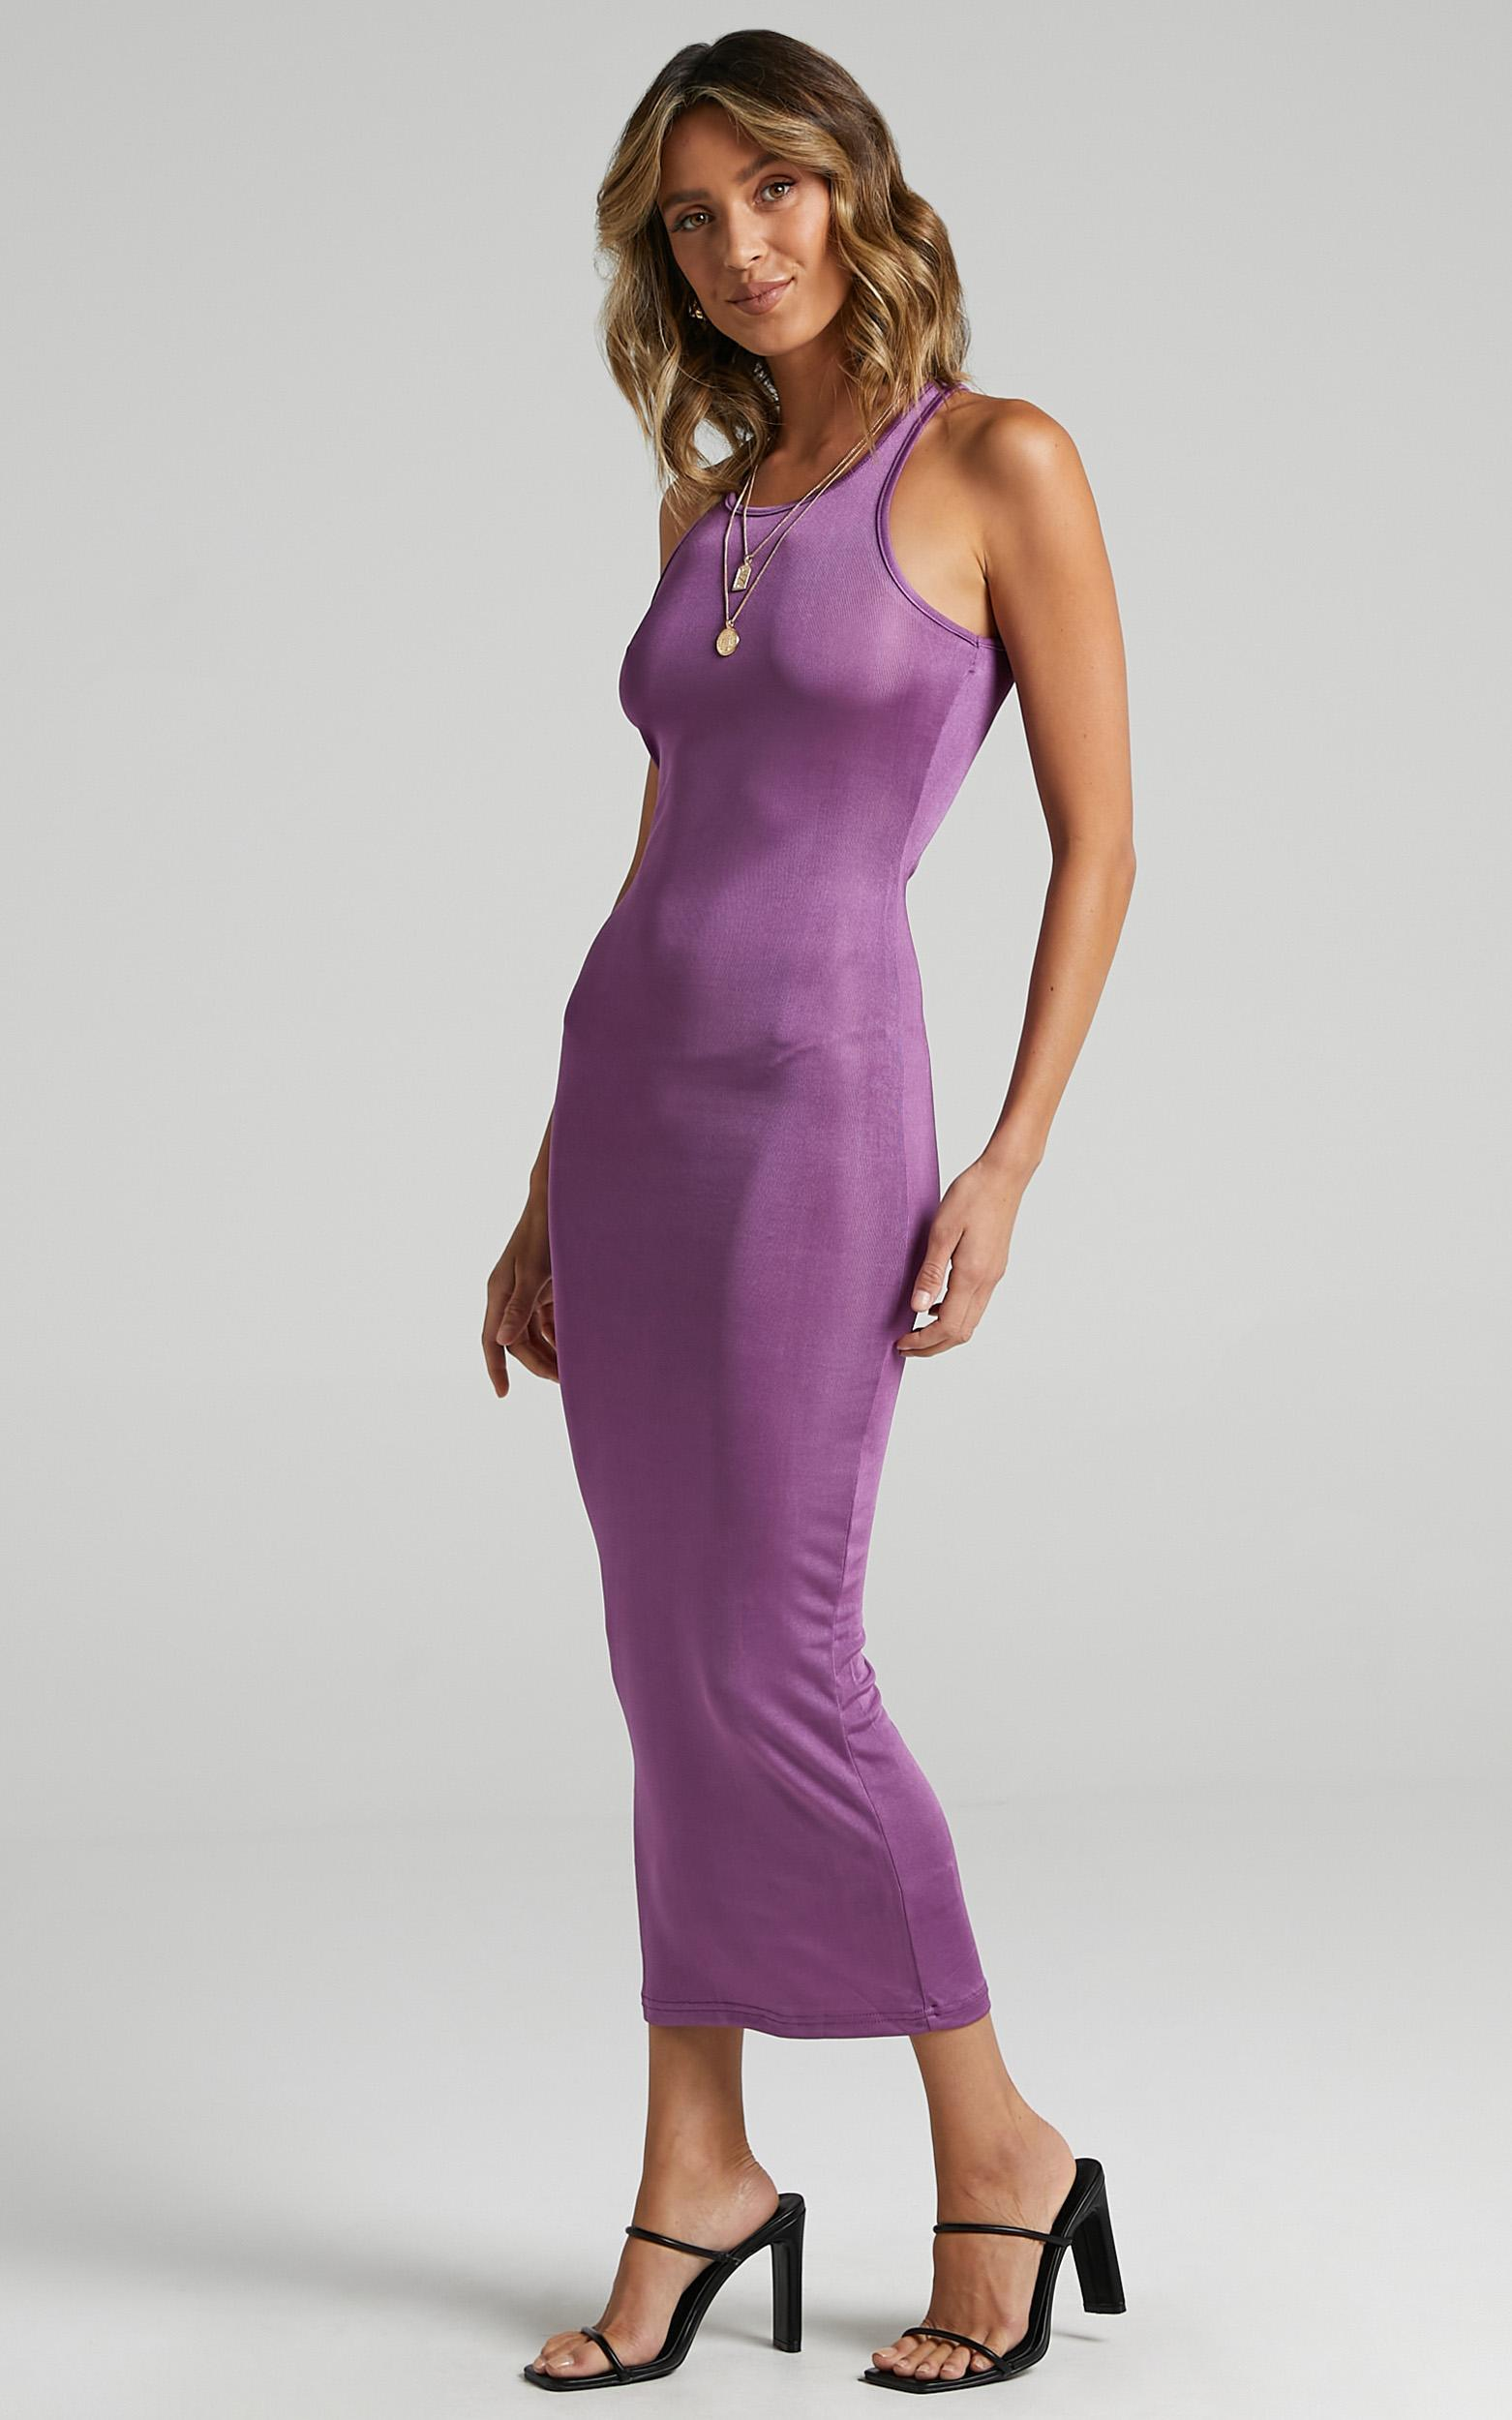 Lioness - Everlast Dress in Dark Orchid - 6 (XS), Purple, hi-res image number null